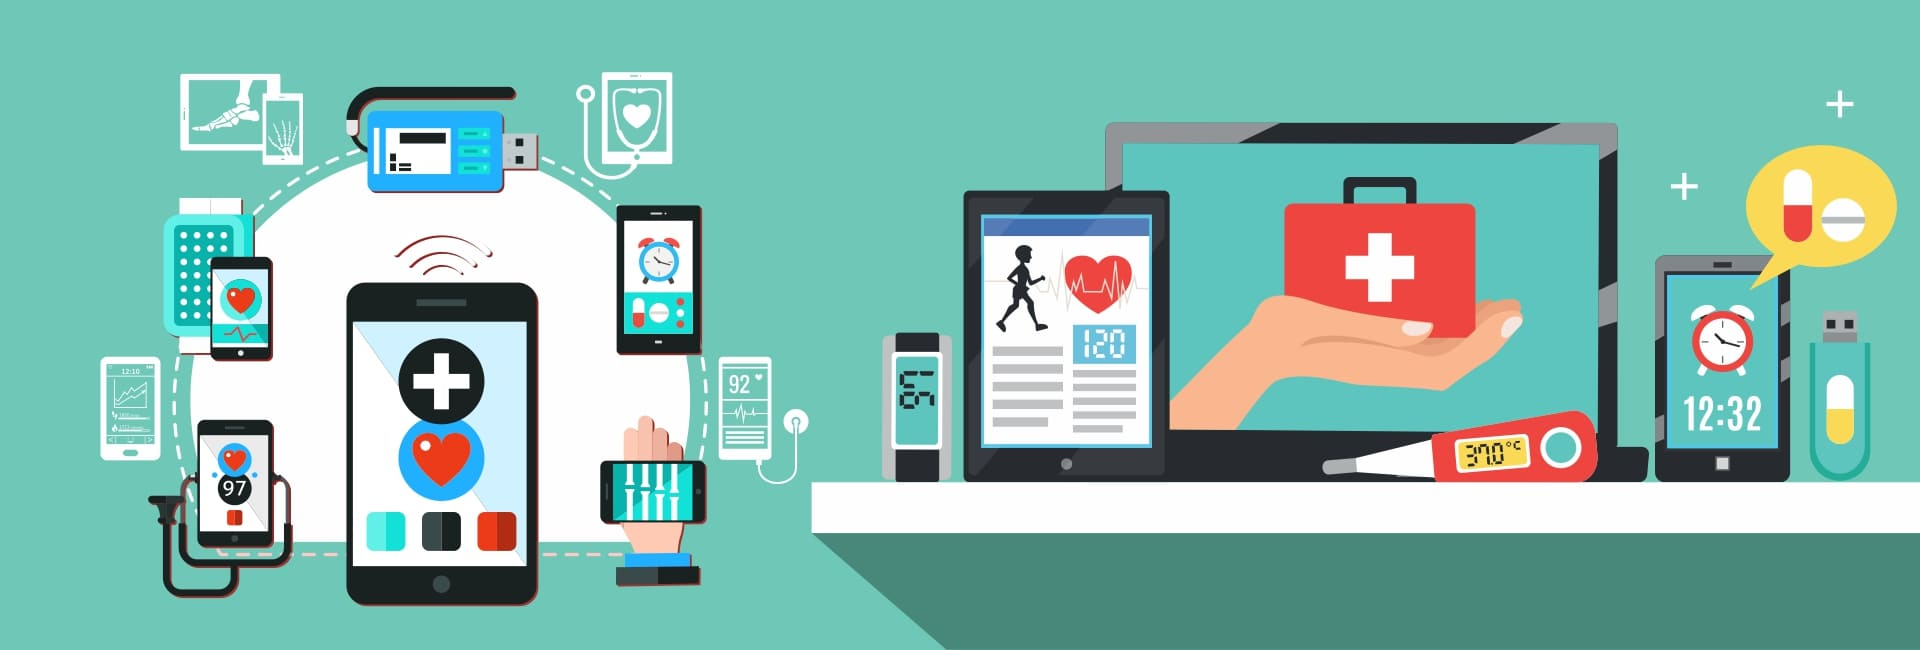 mHealth Monitoring Diagnostic Medical Devices Market Manufacturers Focus on Performance and Portability of Products for Innovation Forecast to 2031